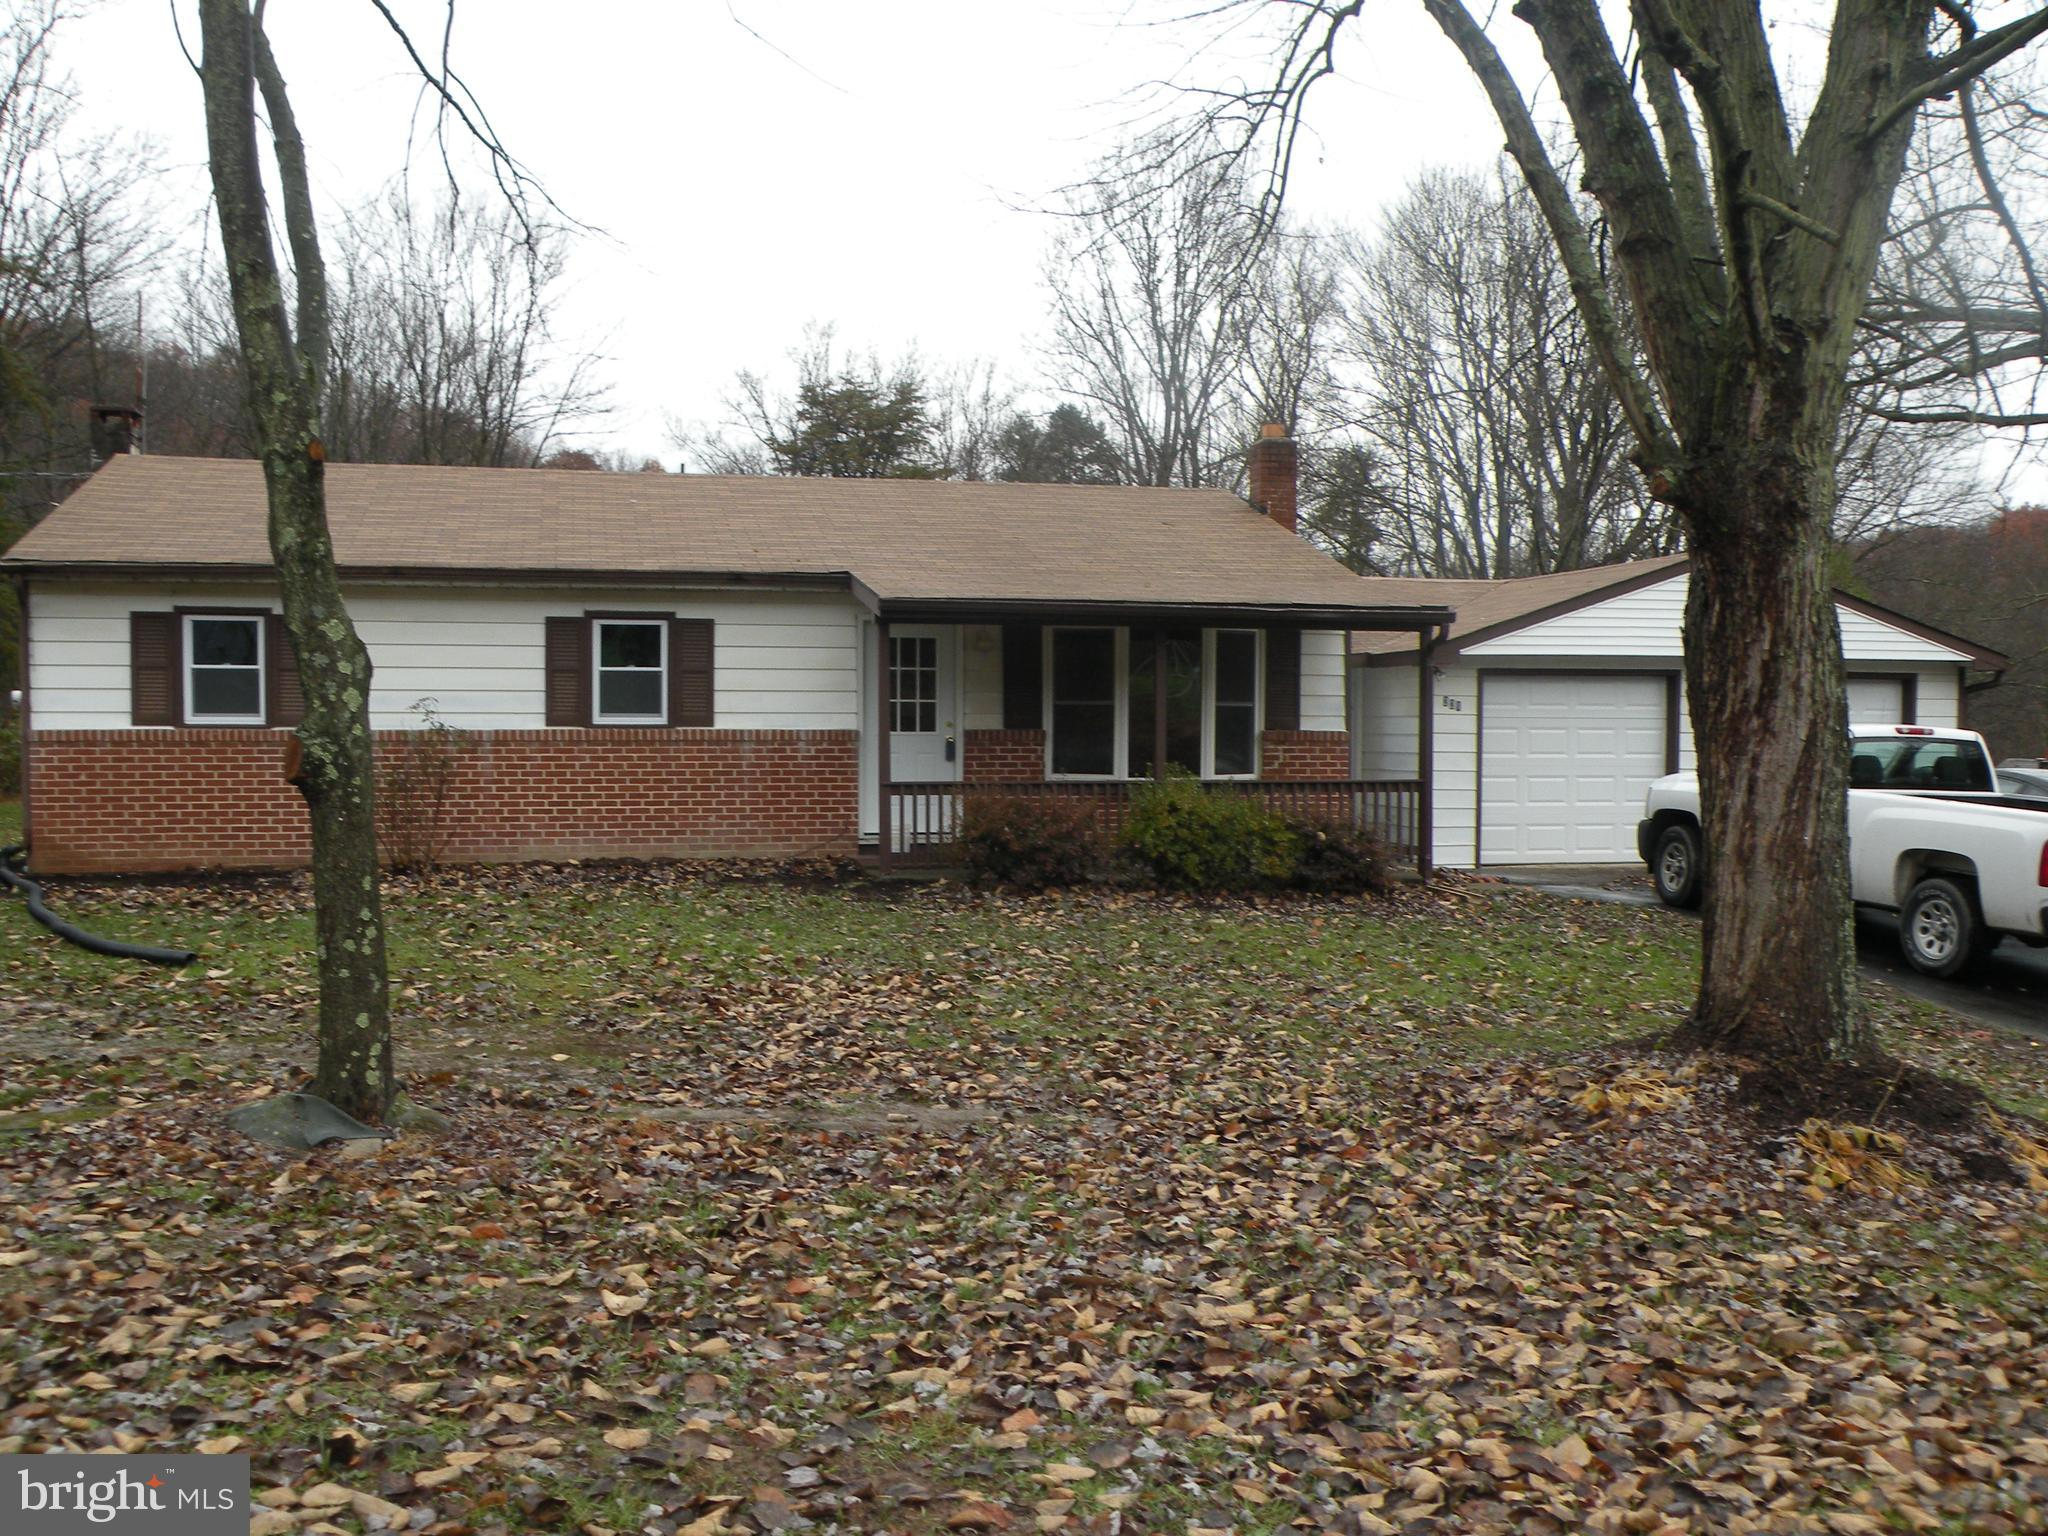 221 FOX HOLLOW ROAD, SHERMANS DALE, PA 17090